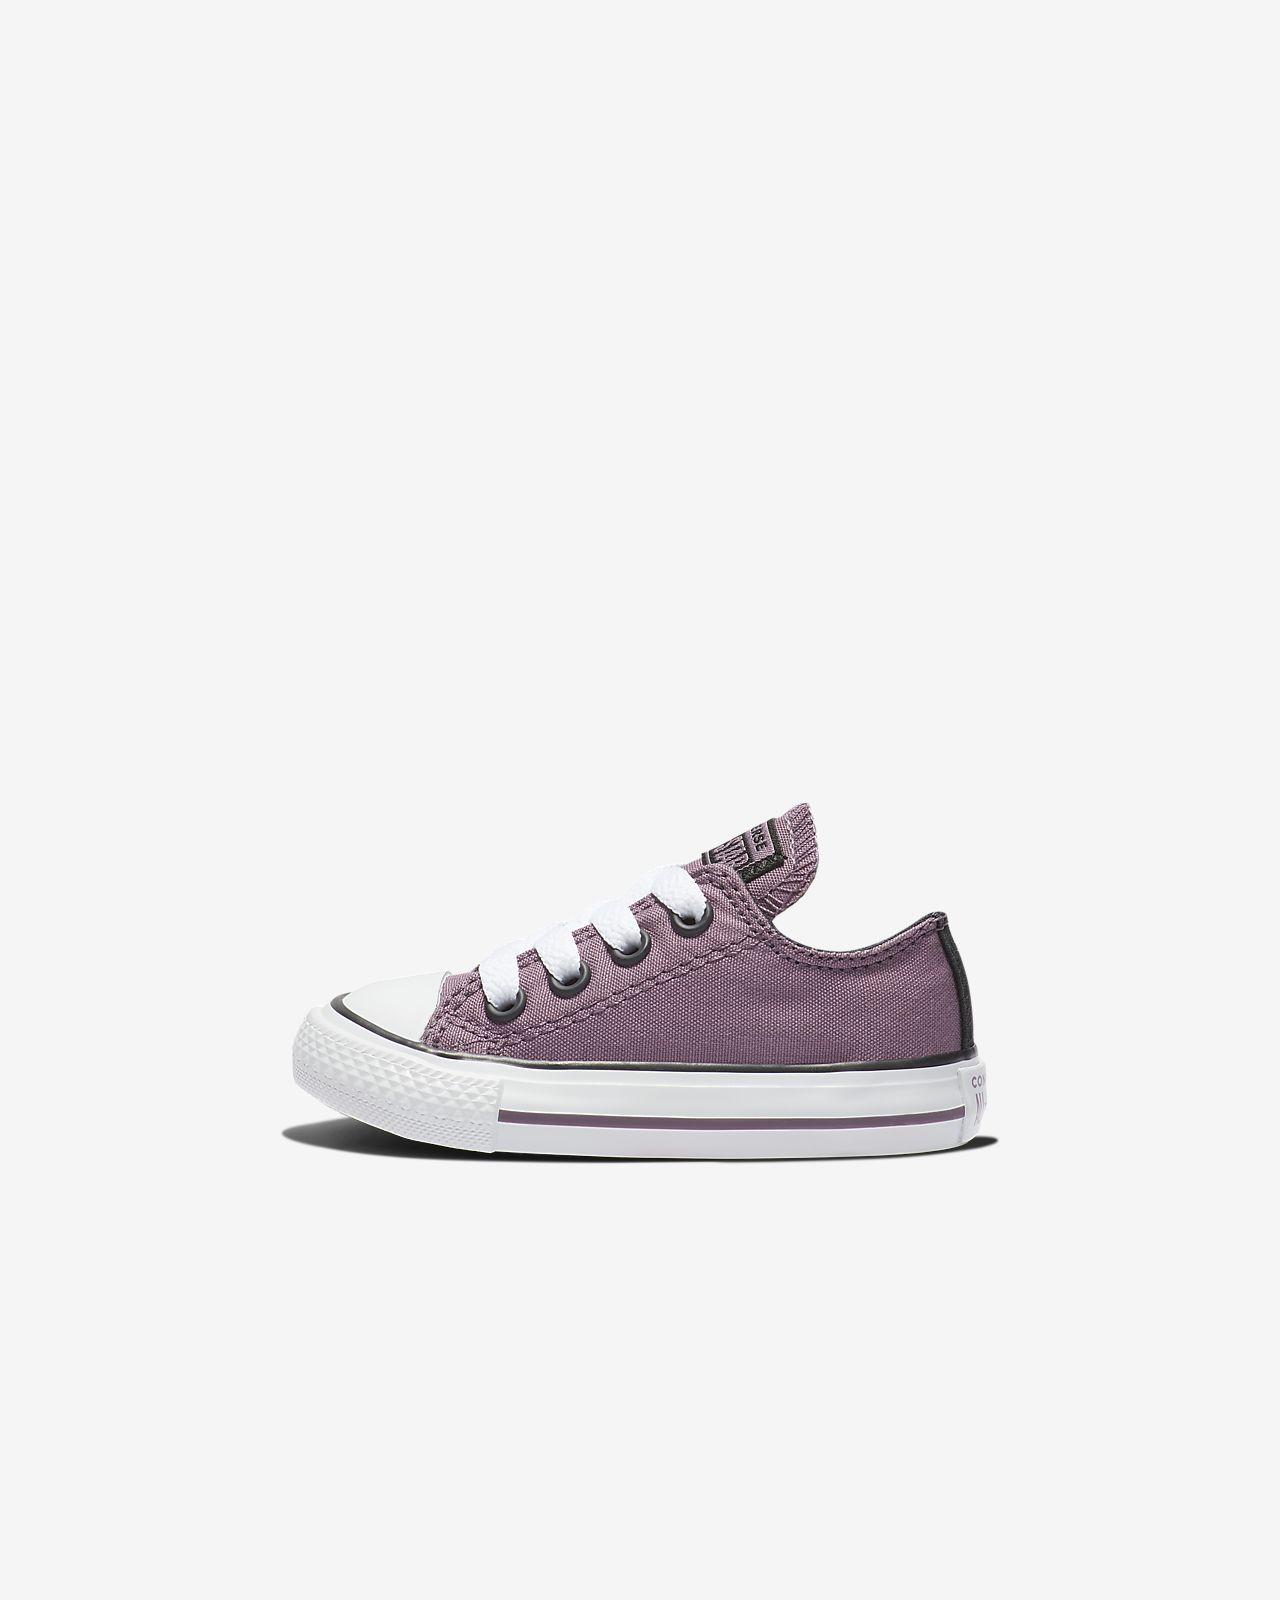 Converse Chuck Taylor All Star Seasonal Colors Low Top Infants' Shoe